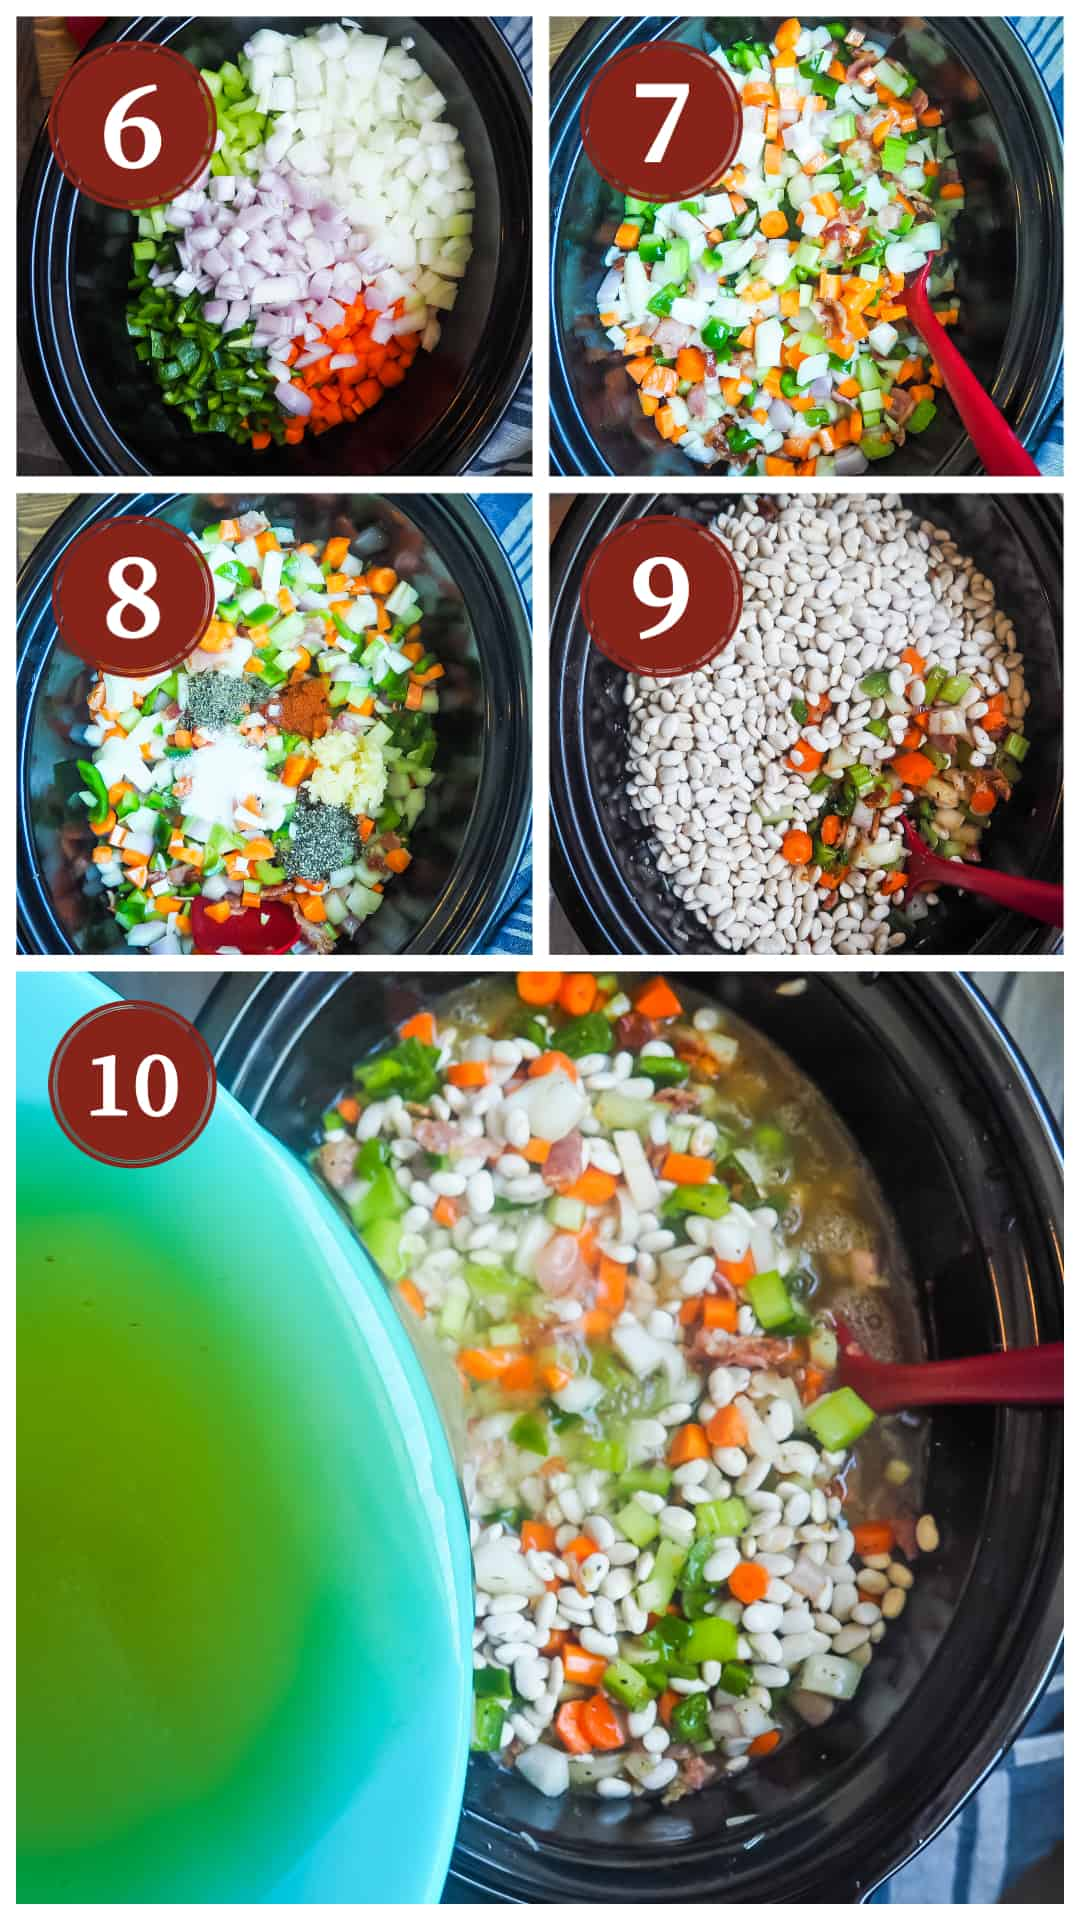 Images showing the process of cooking white beans and ham in a slow cooker, steps 6 - 10.